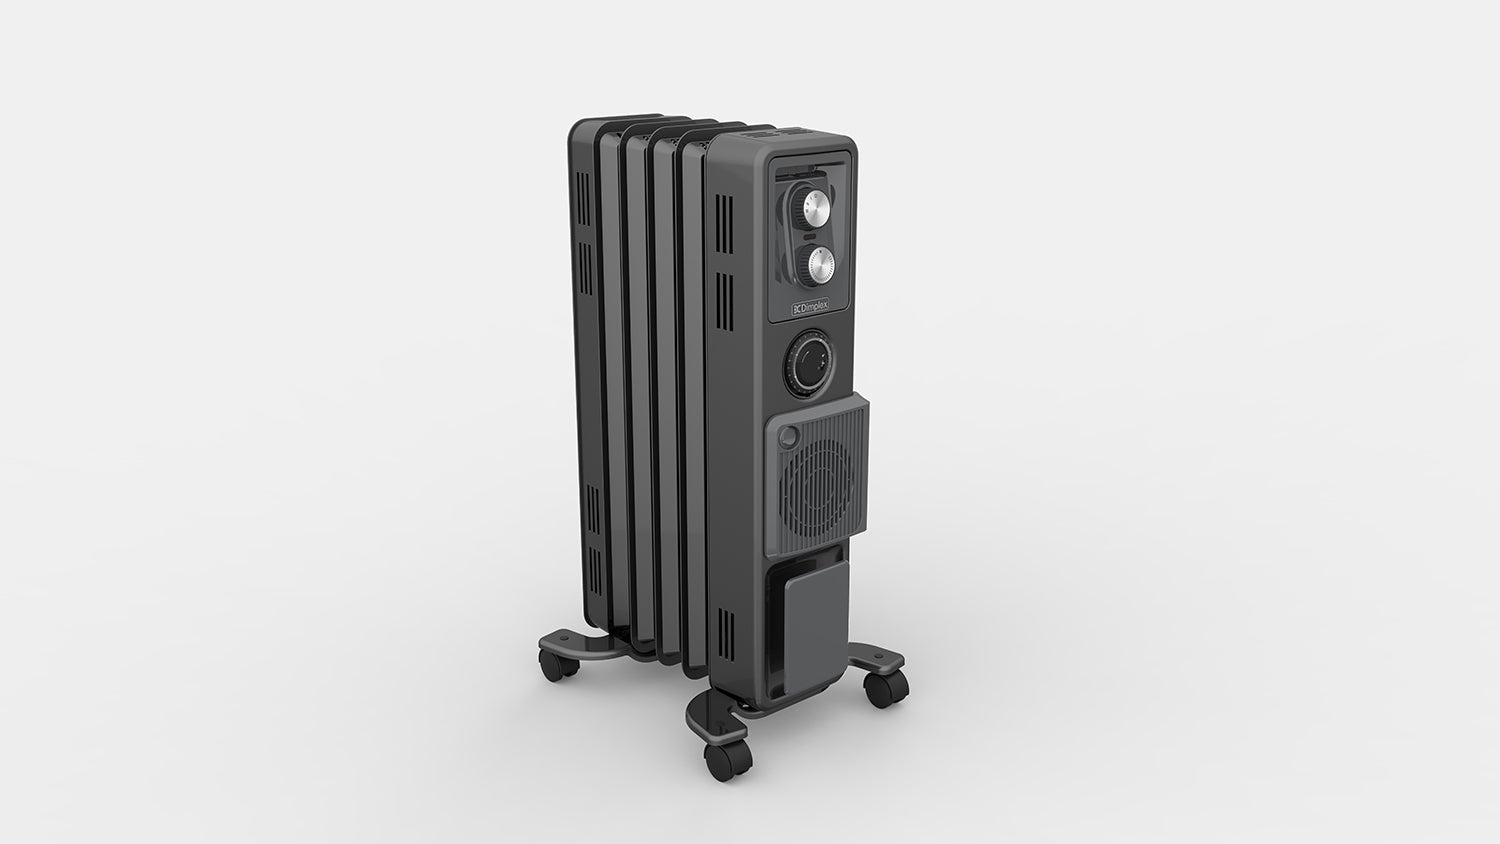 1.5kW Oil Free Column Heater with Timer & Turbo Fan